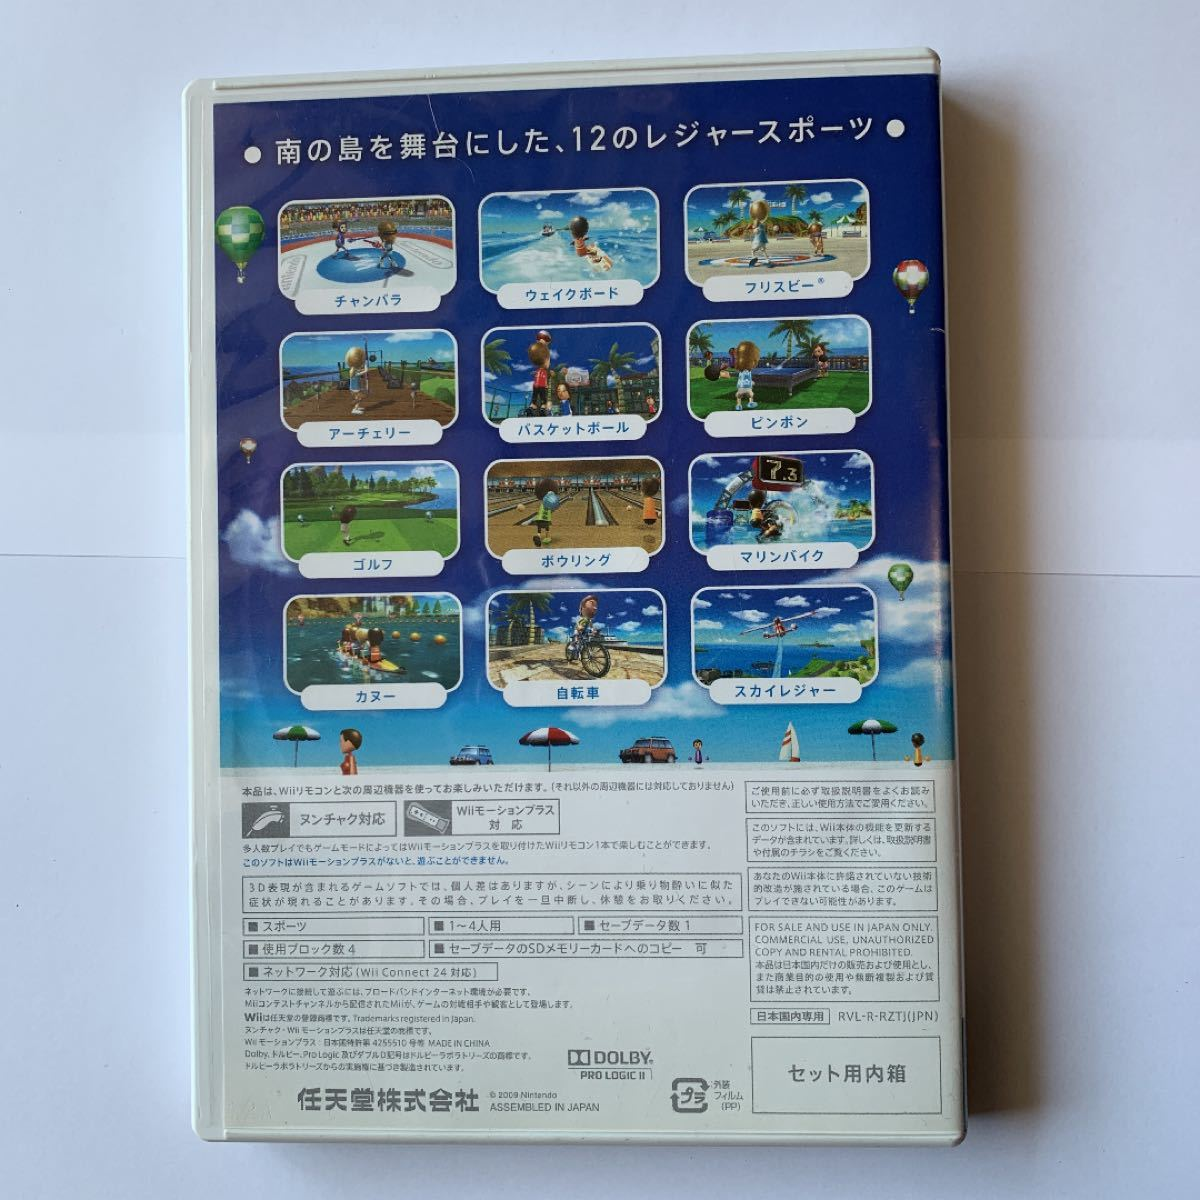 Wiiスポーツ リゾート Wii Sports Resort